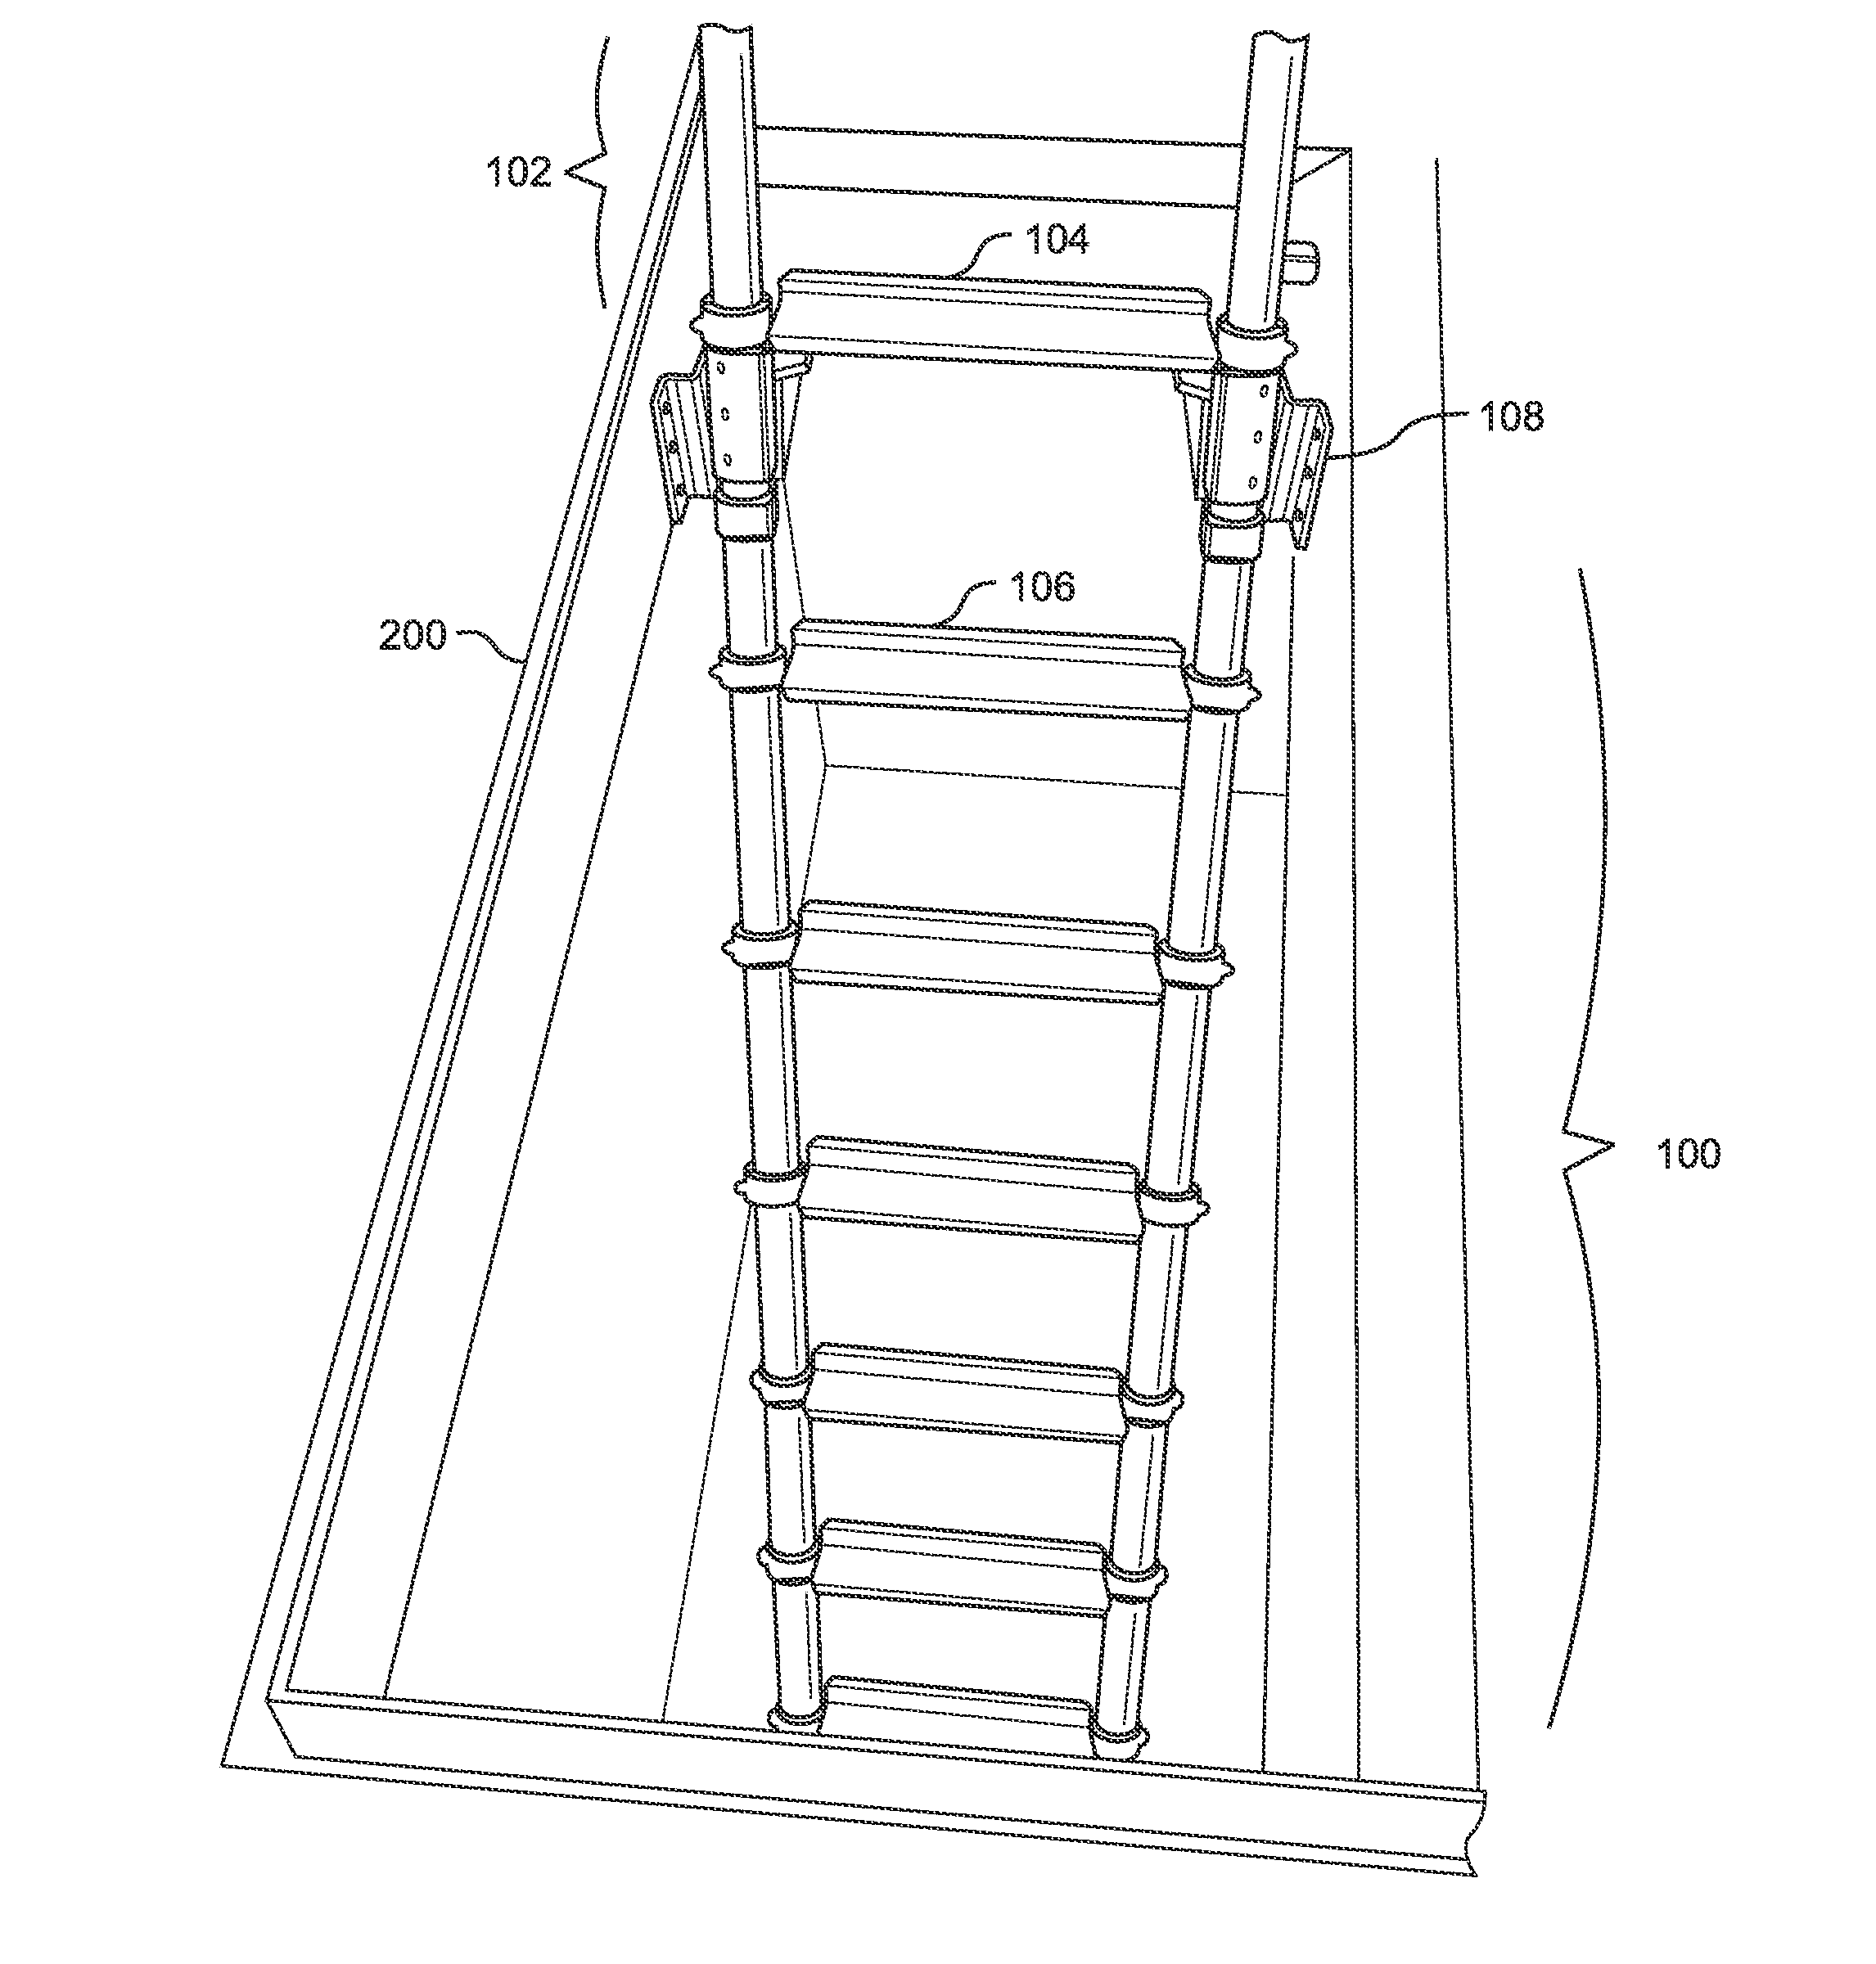 Dolle Barcelona Spiral Stair Kit furthermore Diy Loft Bed 205897 furthermore Attic Stair Cover besides Uses And Testimonials together with Folding Ladders At Lowes. on collapsible attic ladder